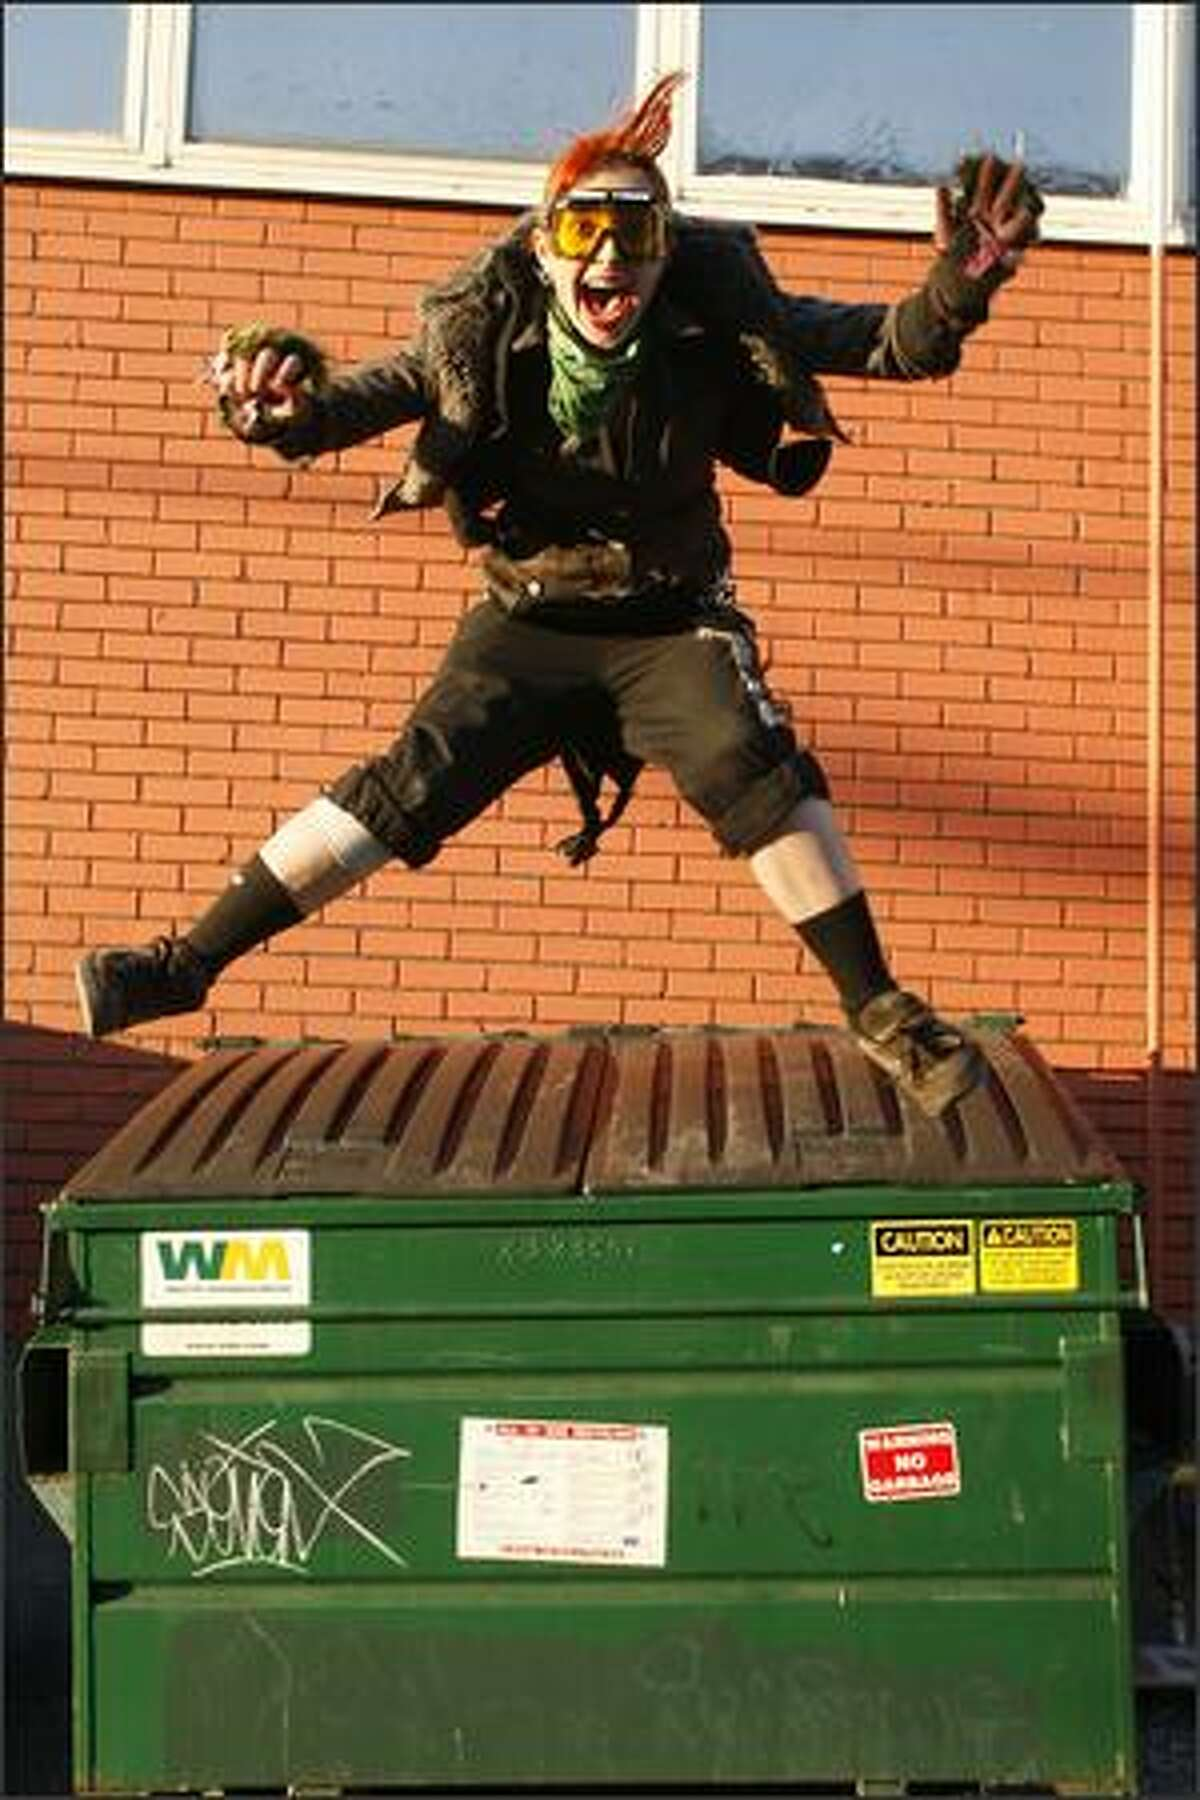 DUMPSTER JUMPSTER -- Alex Collins leaps from a dumpster near Capitol Hill.